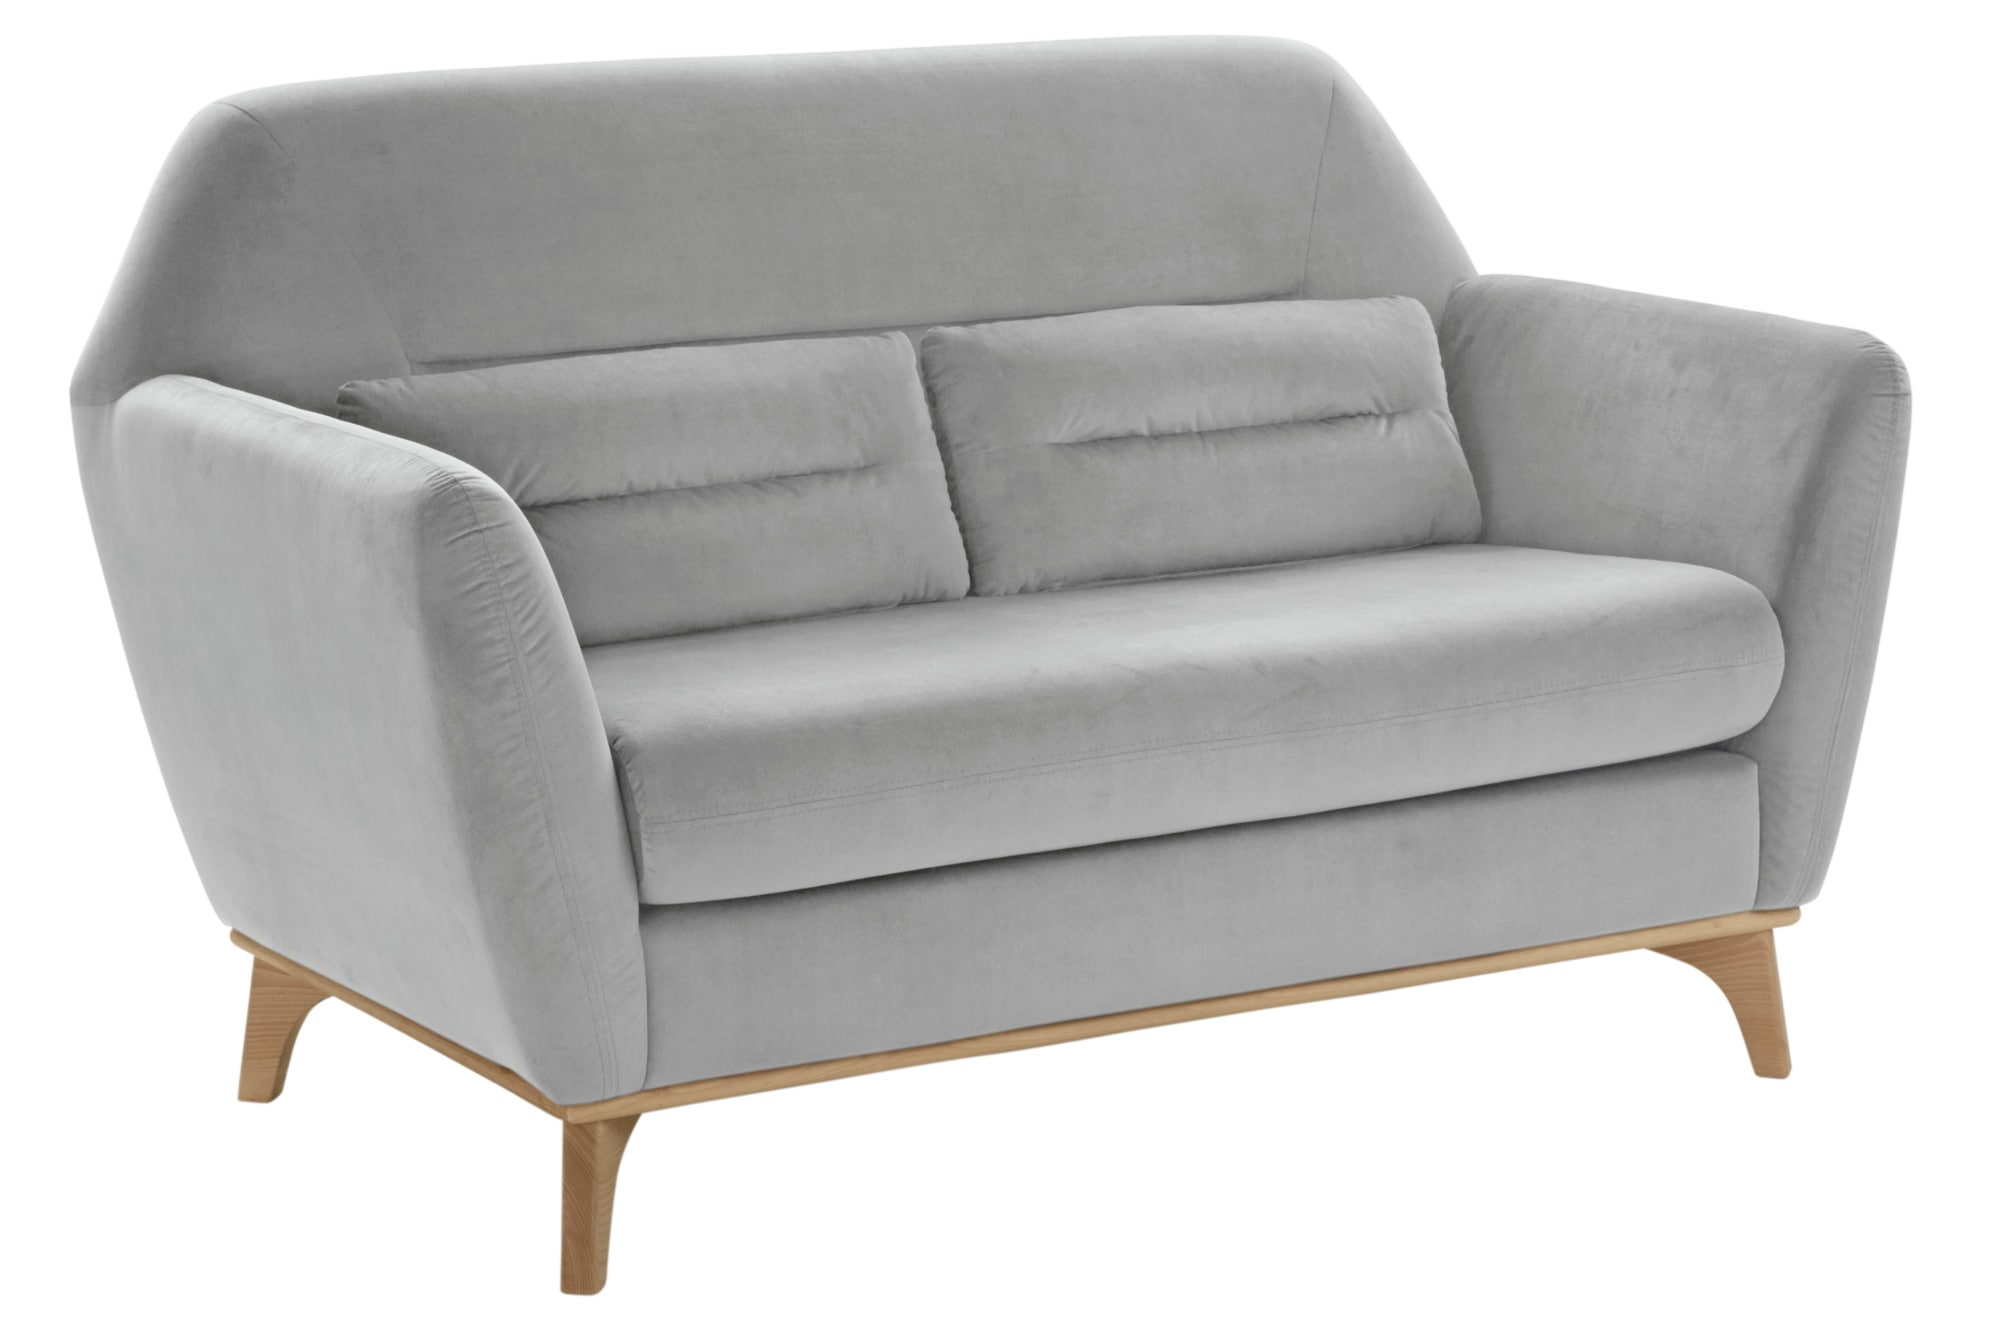 heine home Sofa Bezug in Samtoptik